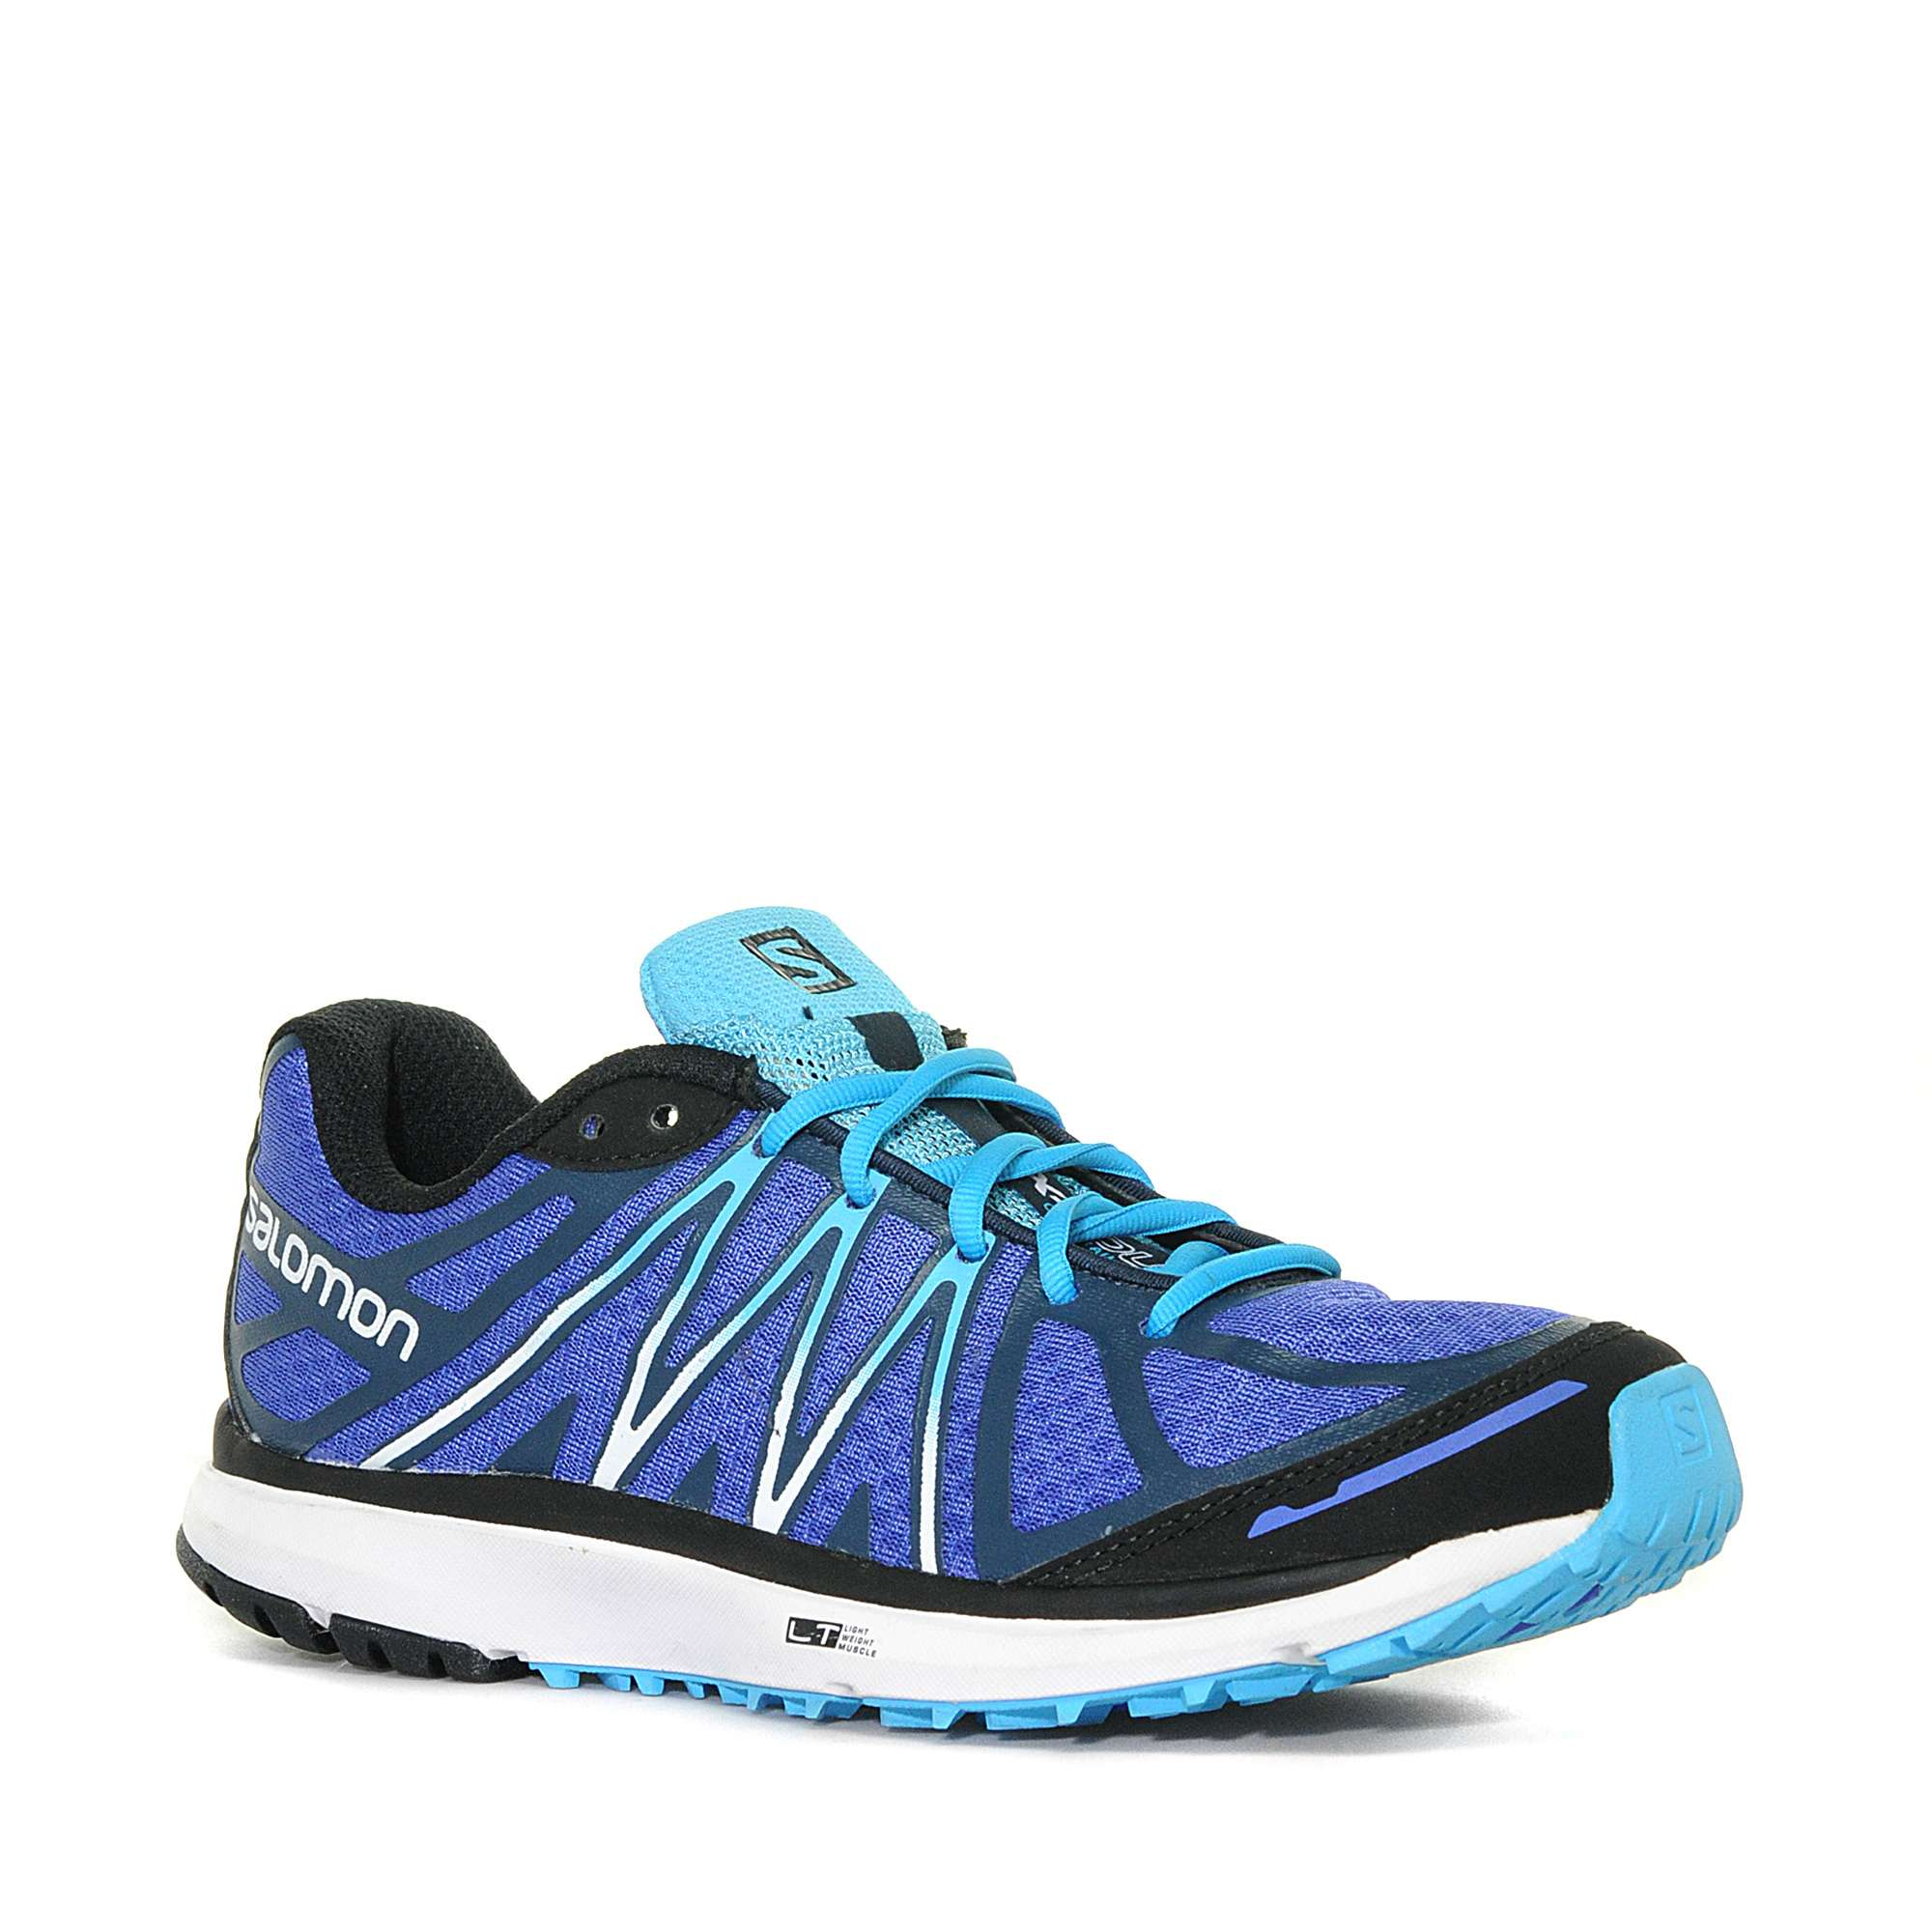 SALOMON Women's X-Tour Trail Running Shoe